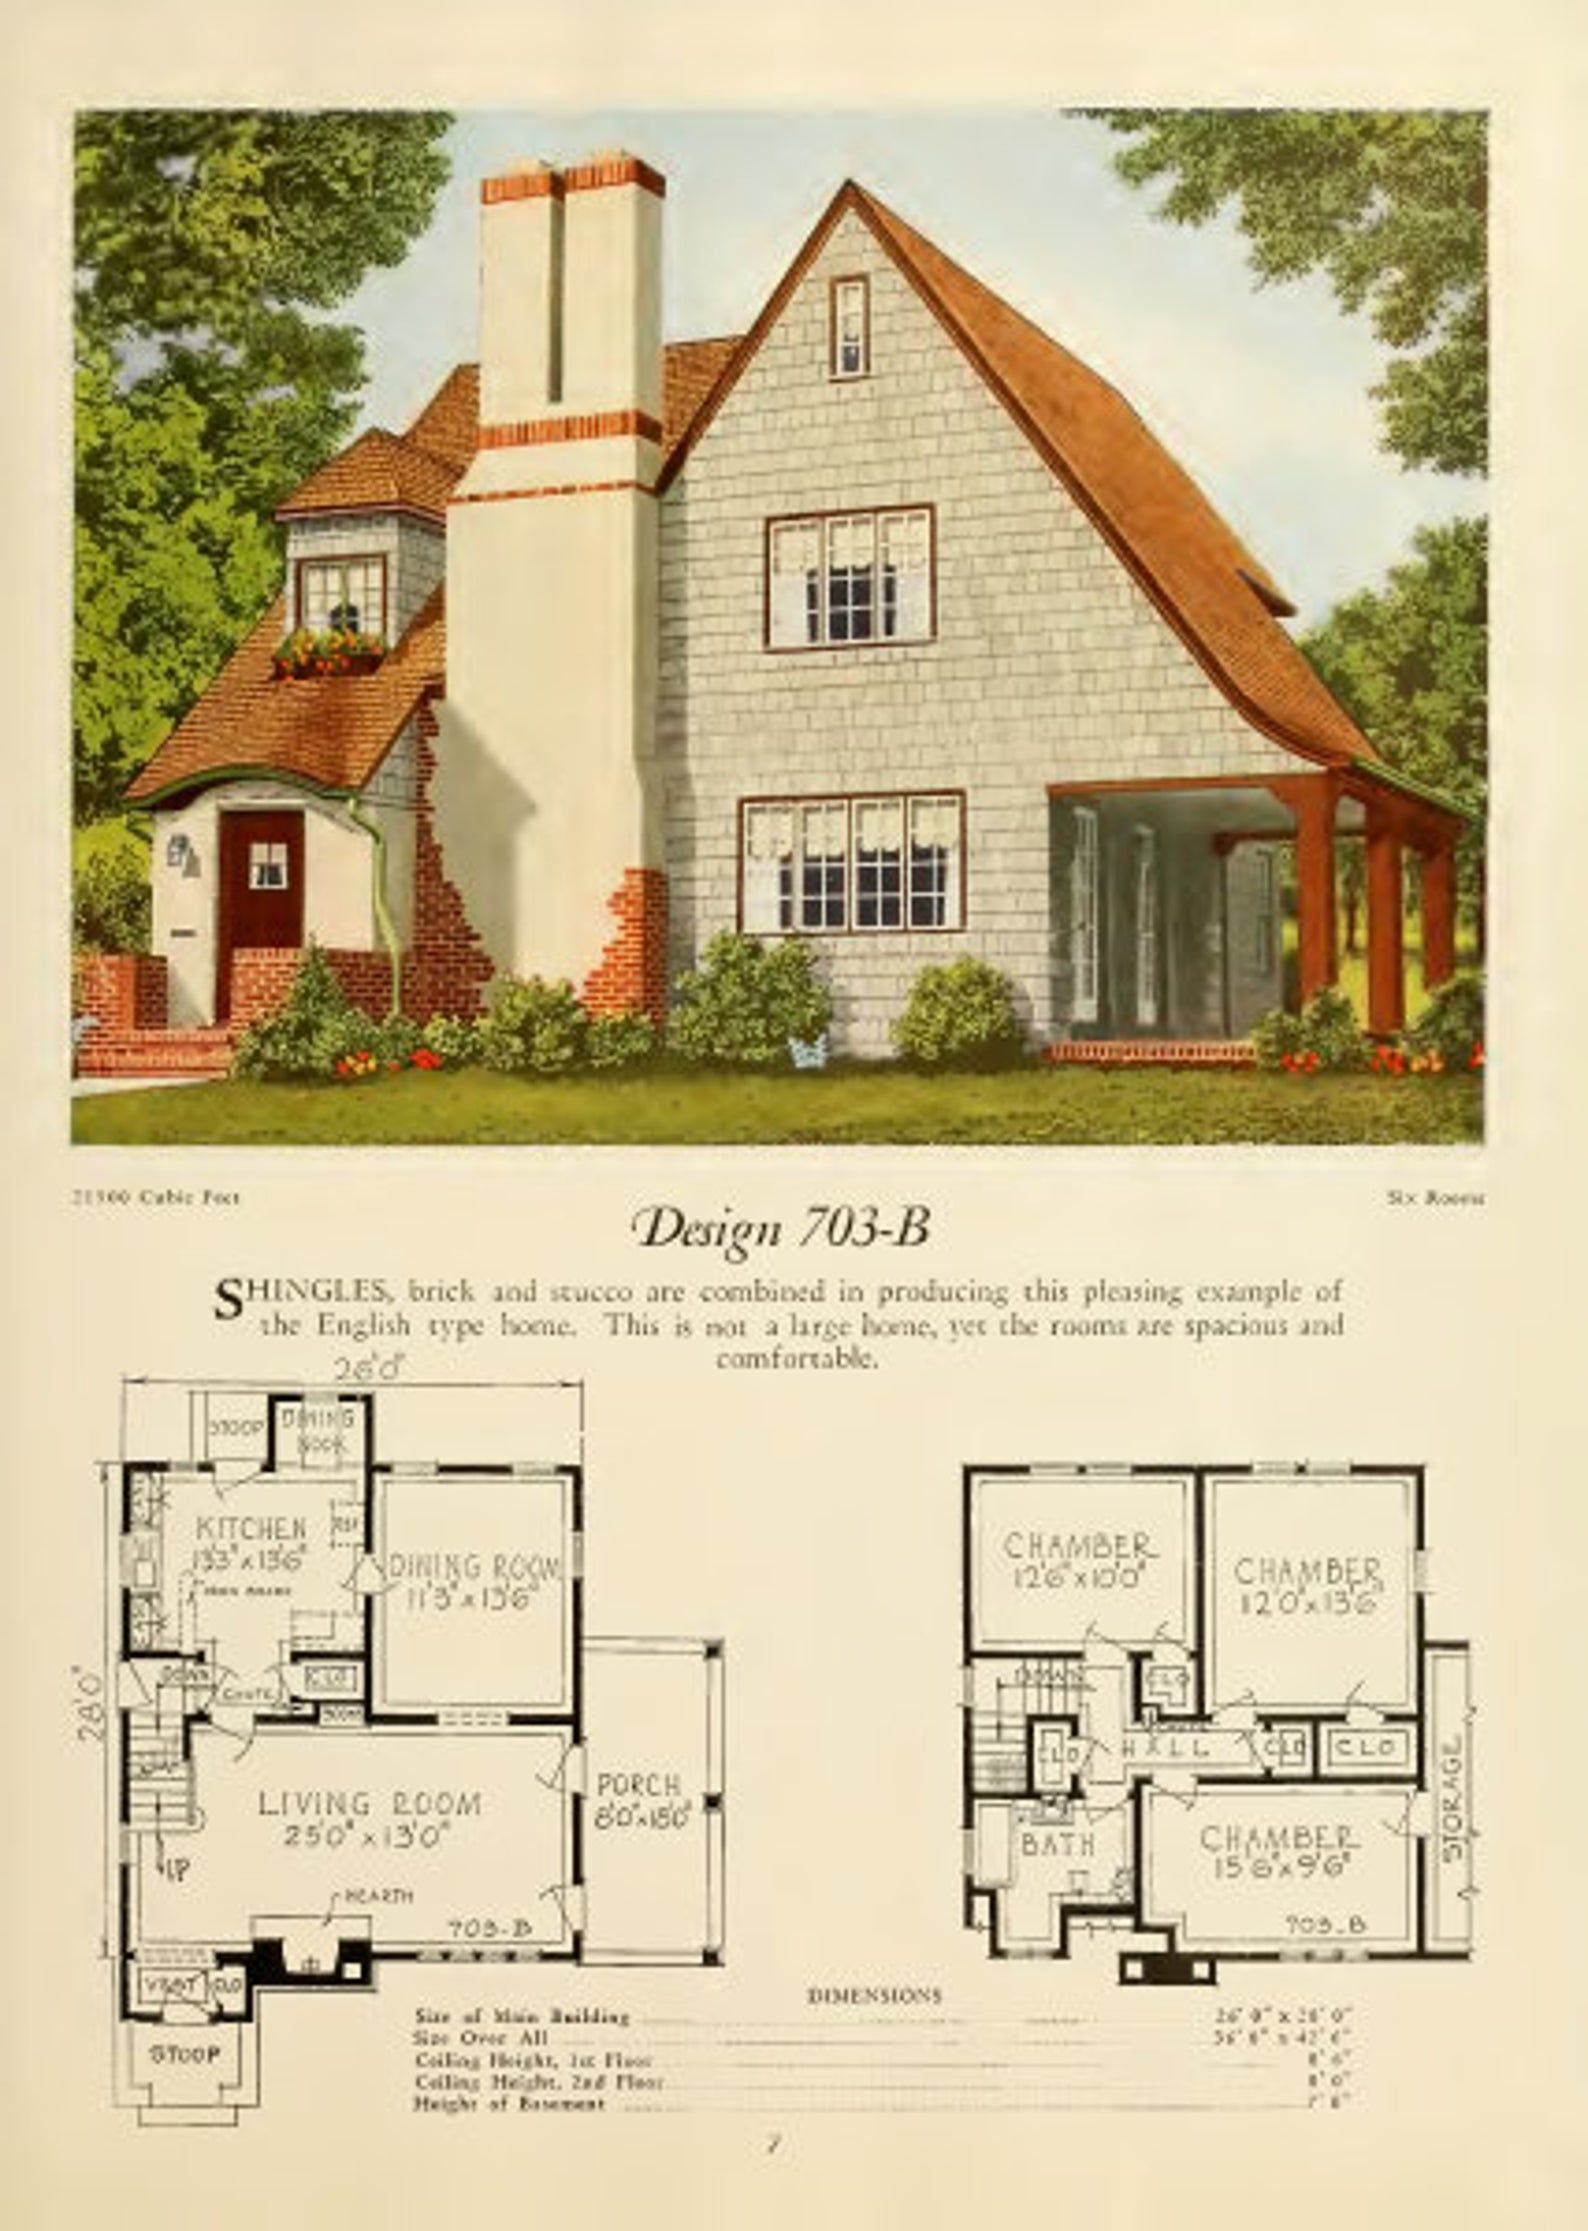 1920s Modern Homes Book of Vintage House Plans Architecture Digital PDF Copy Vintage Home Plans